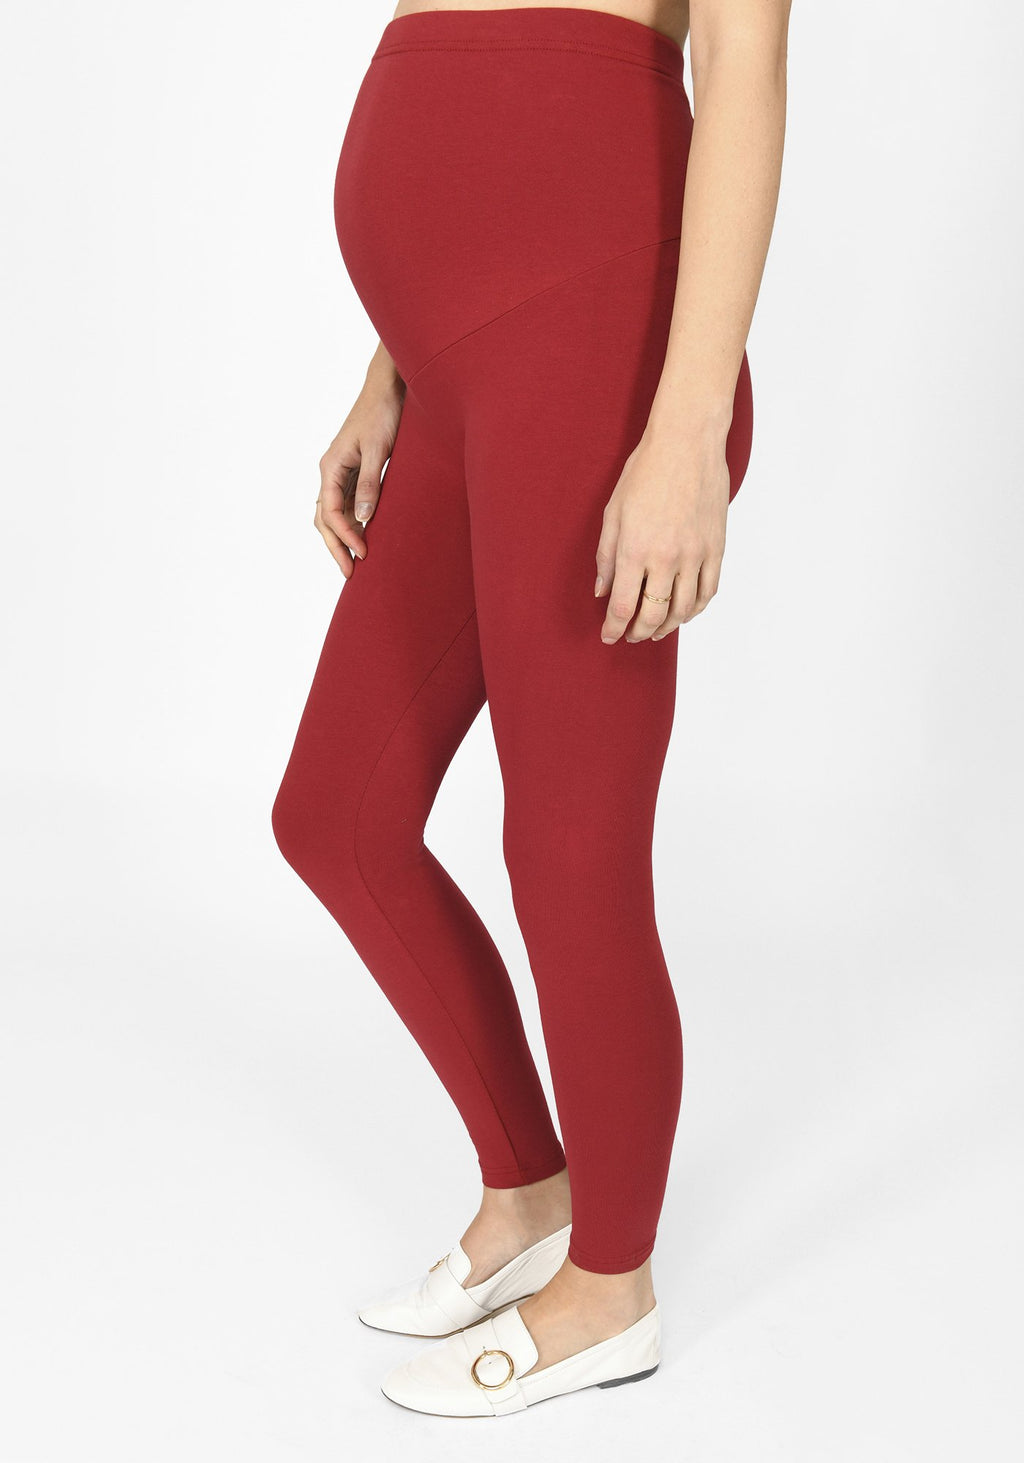 wine red full length maternity leggings 1